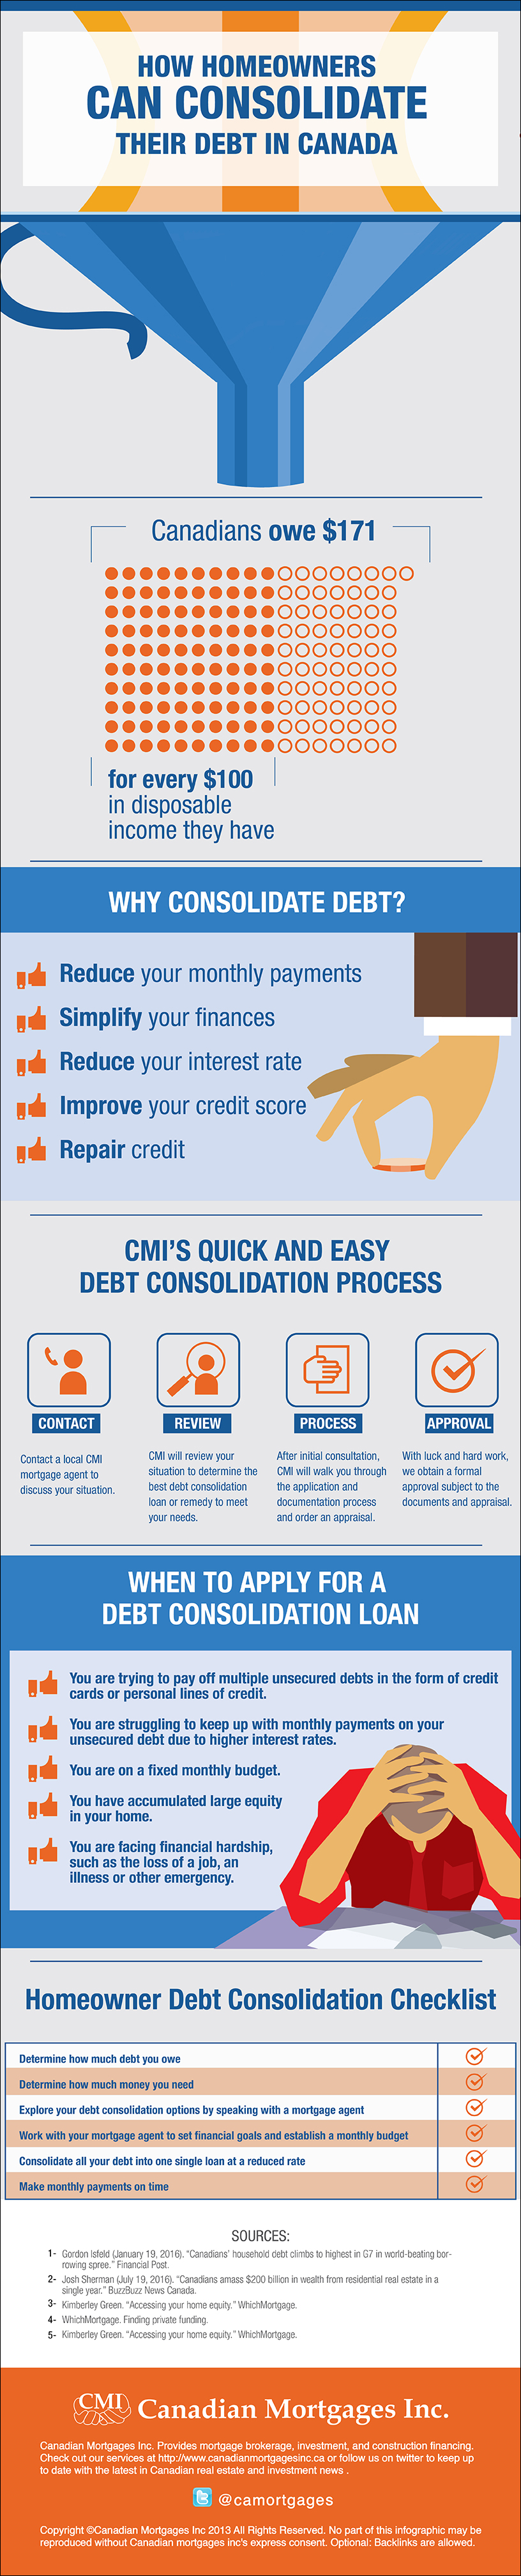 consolidating debt in calgary